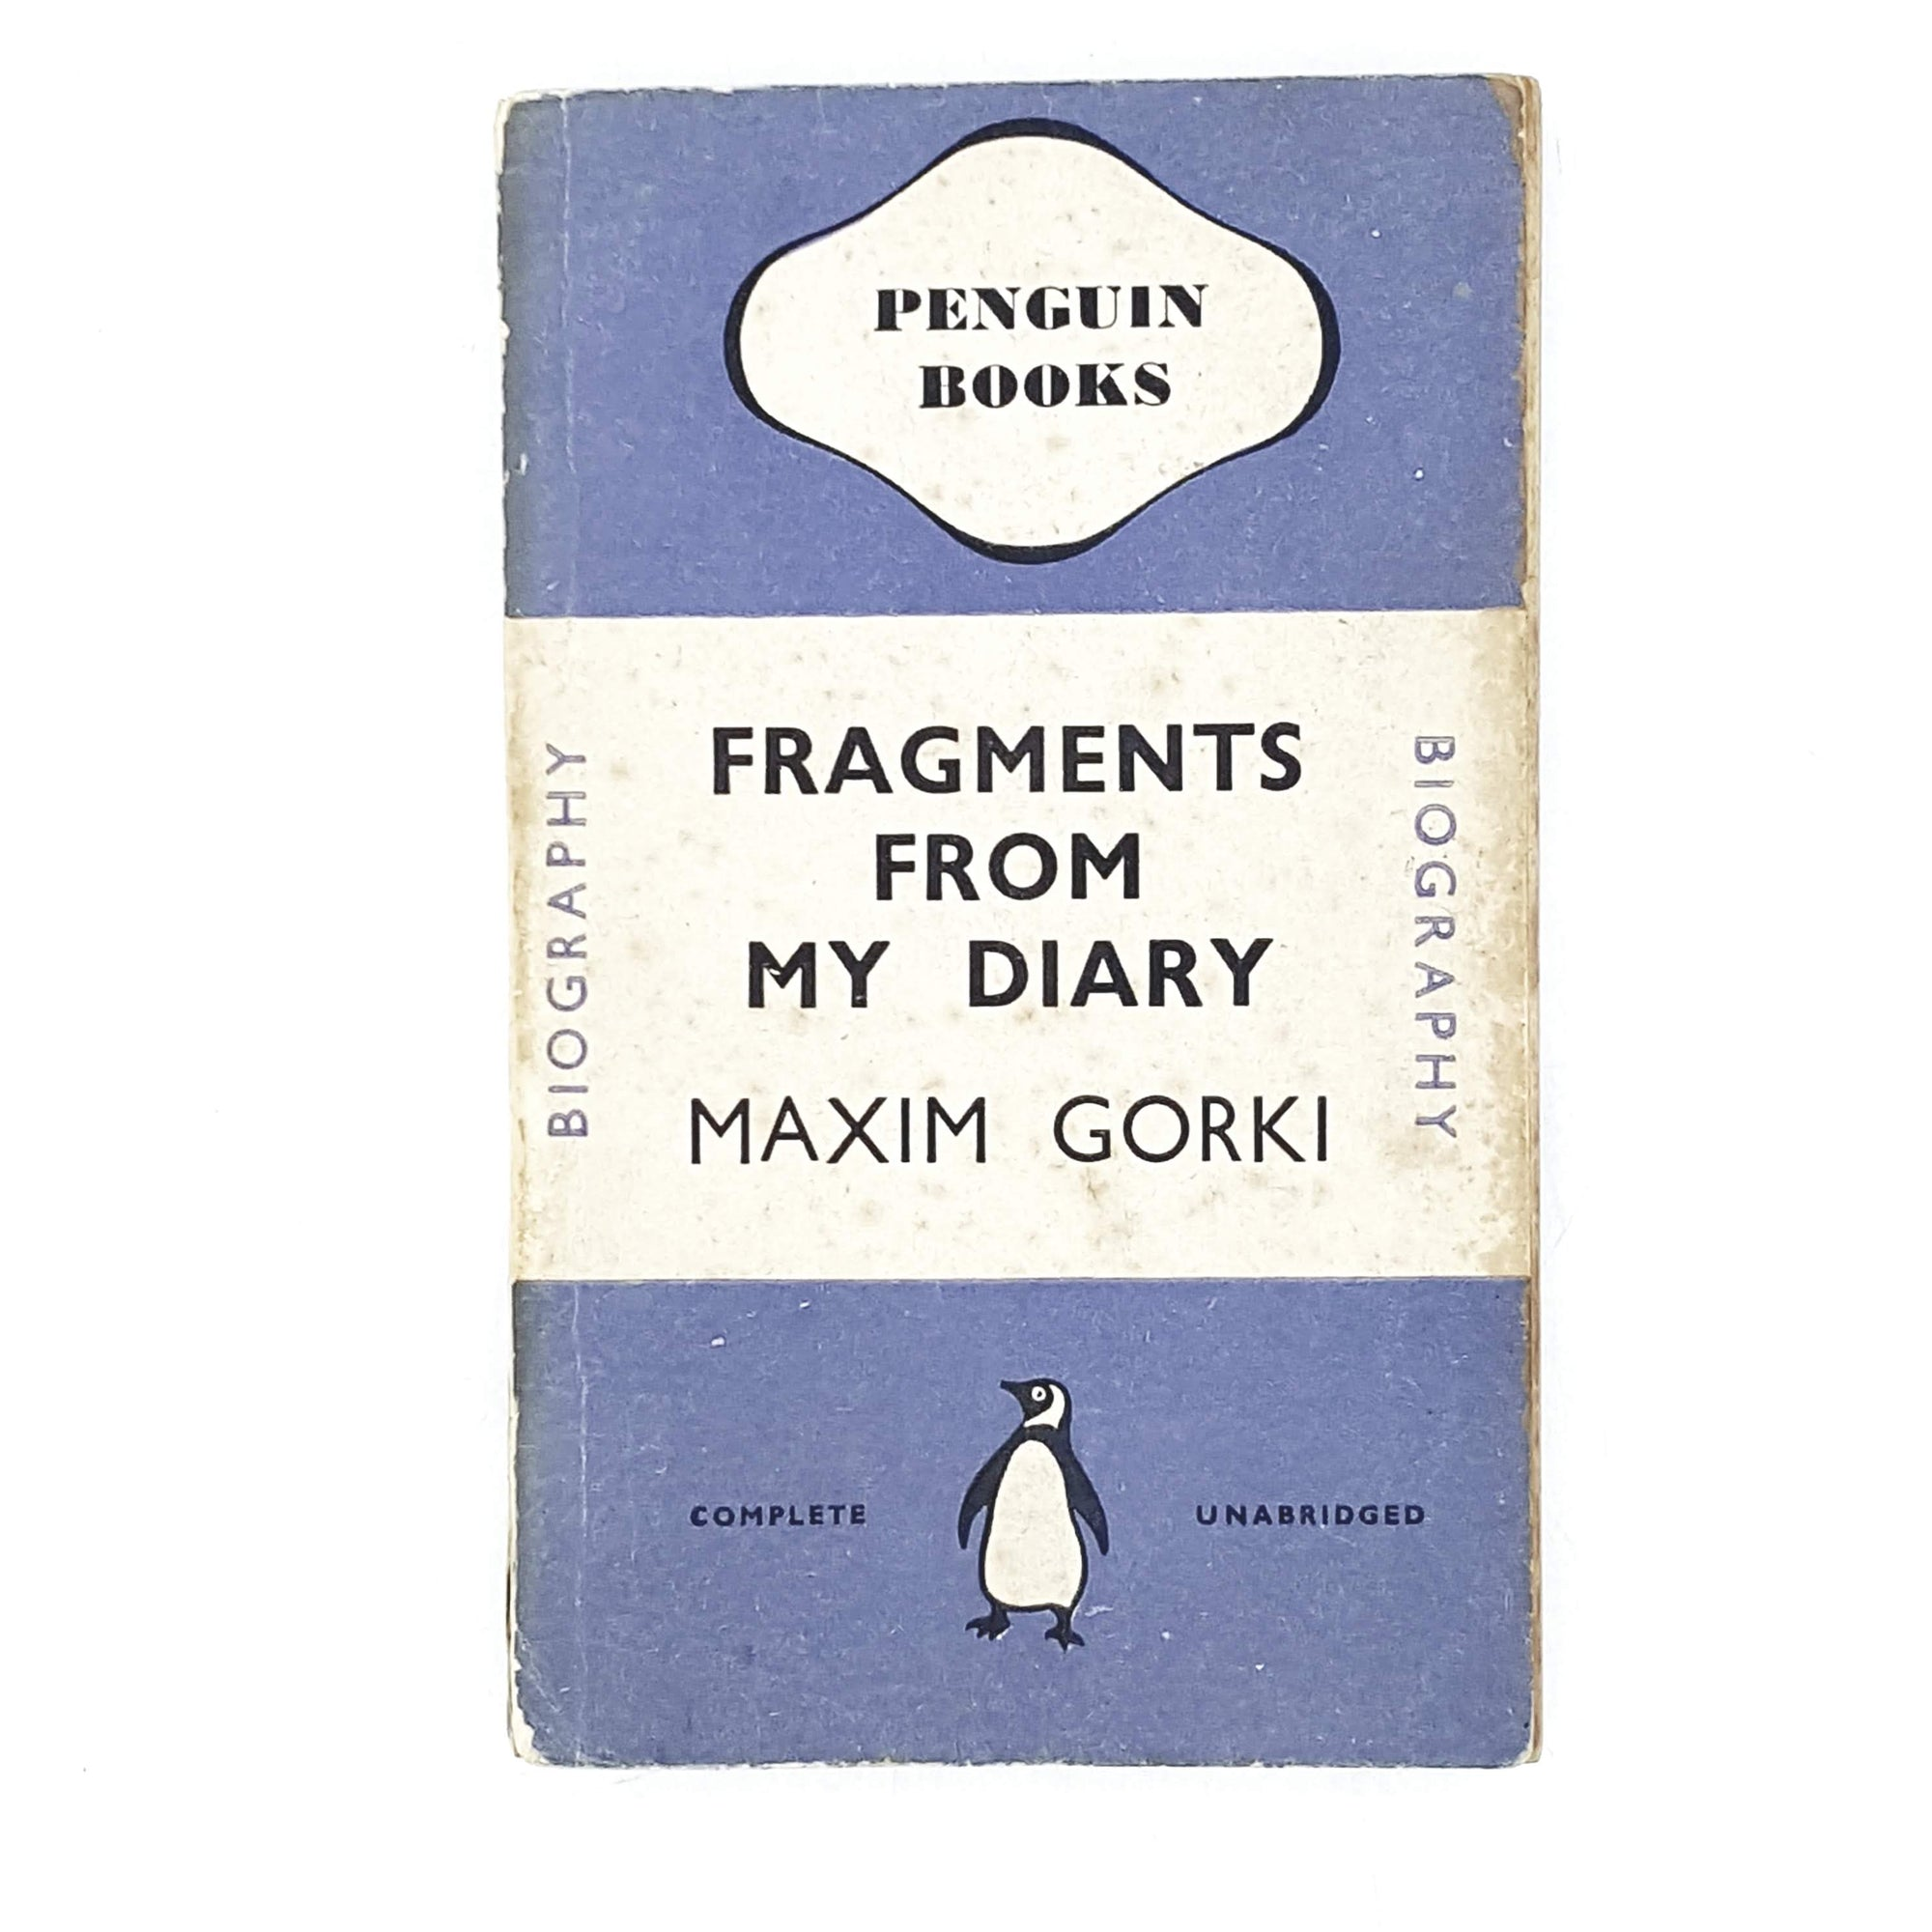 Vintage Penguin Fragments From My Diary by Maxim Gorki 1940